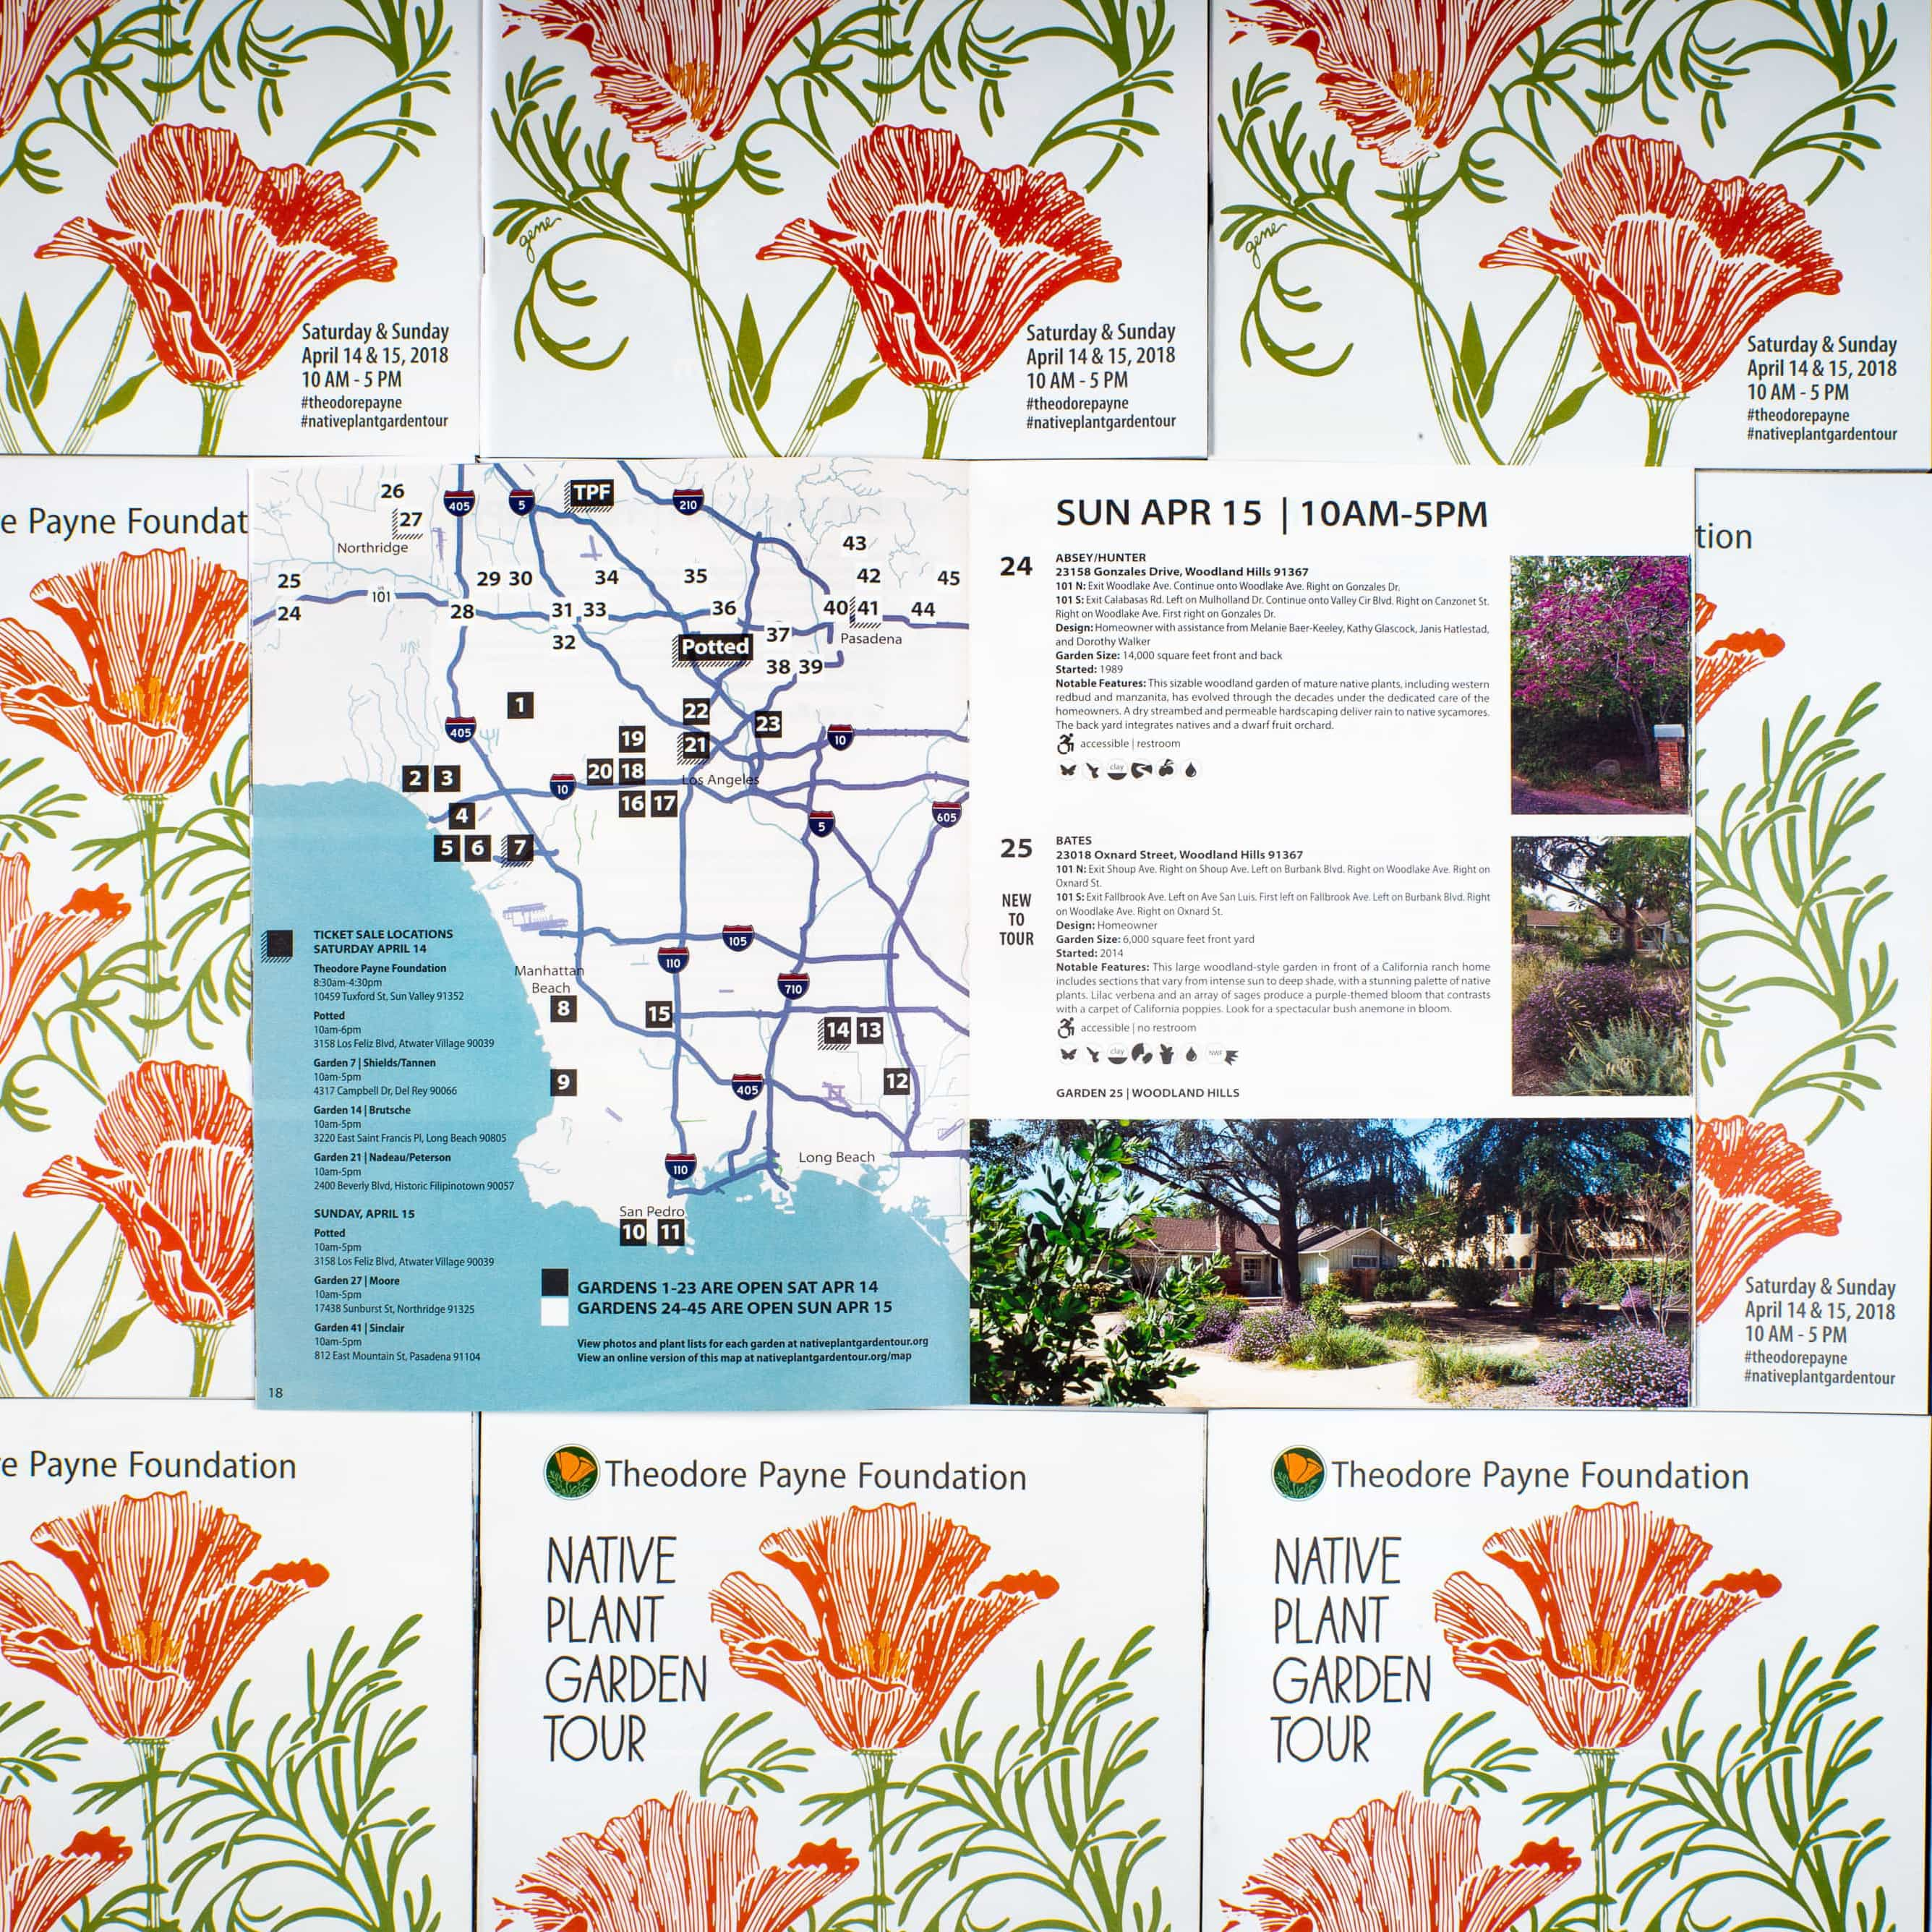 2018 Theodore Payne Foundation Garden Tour Guide Photo